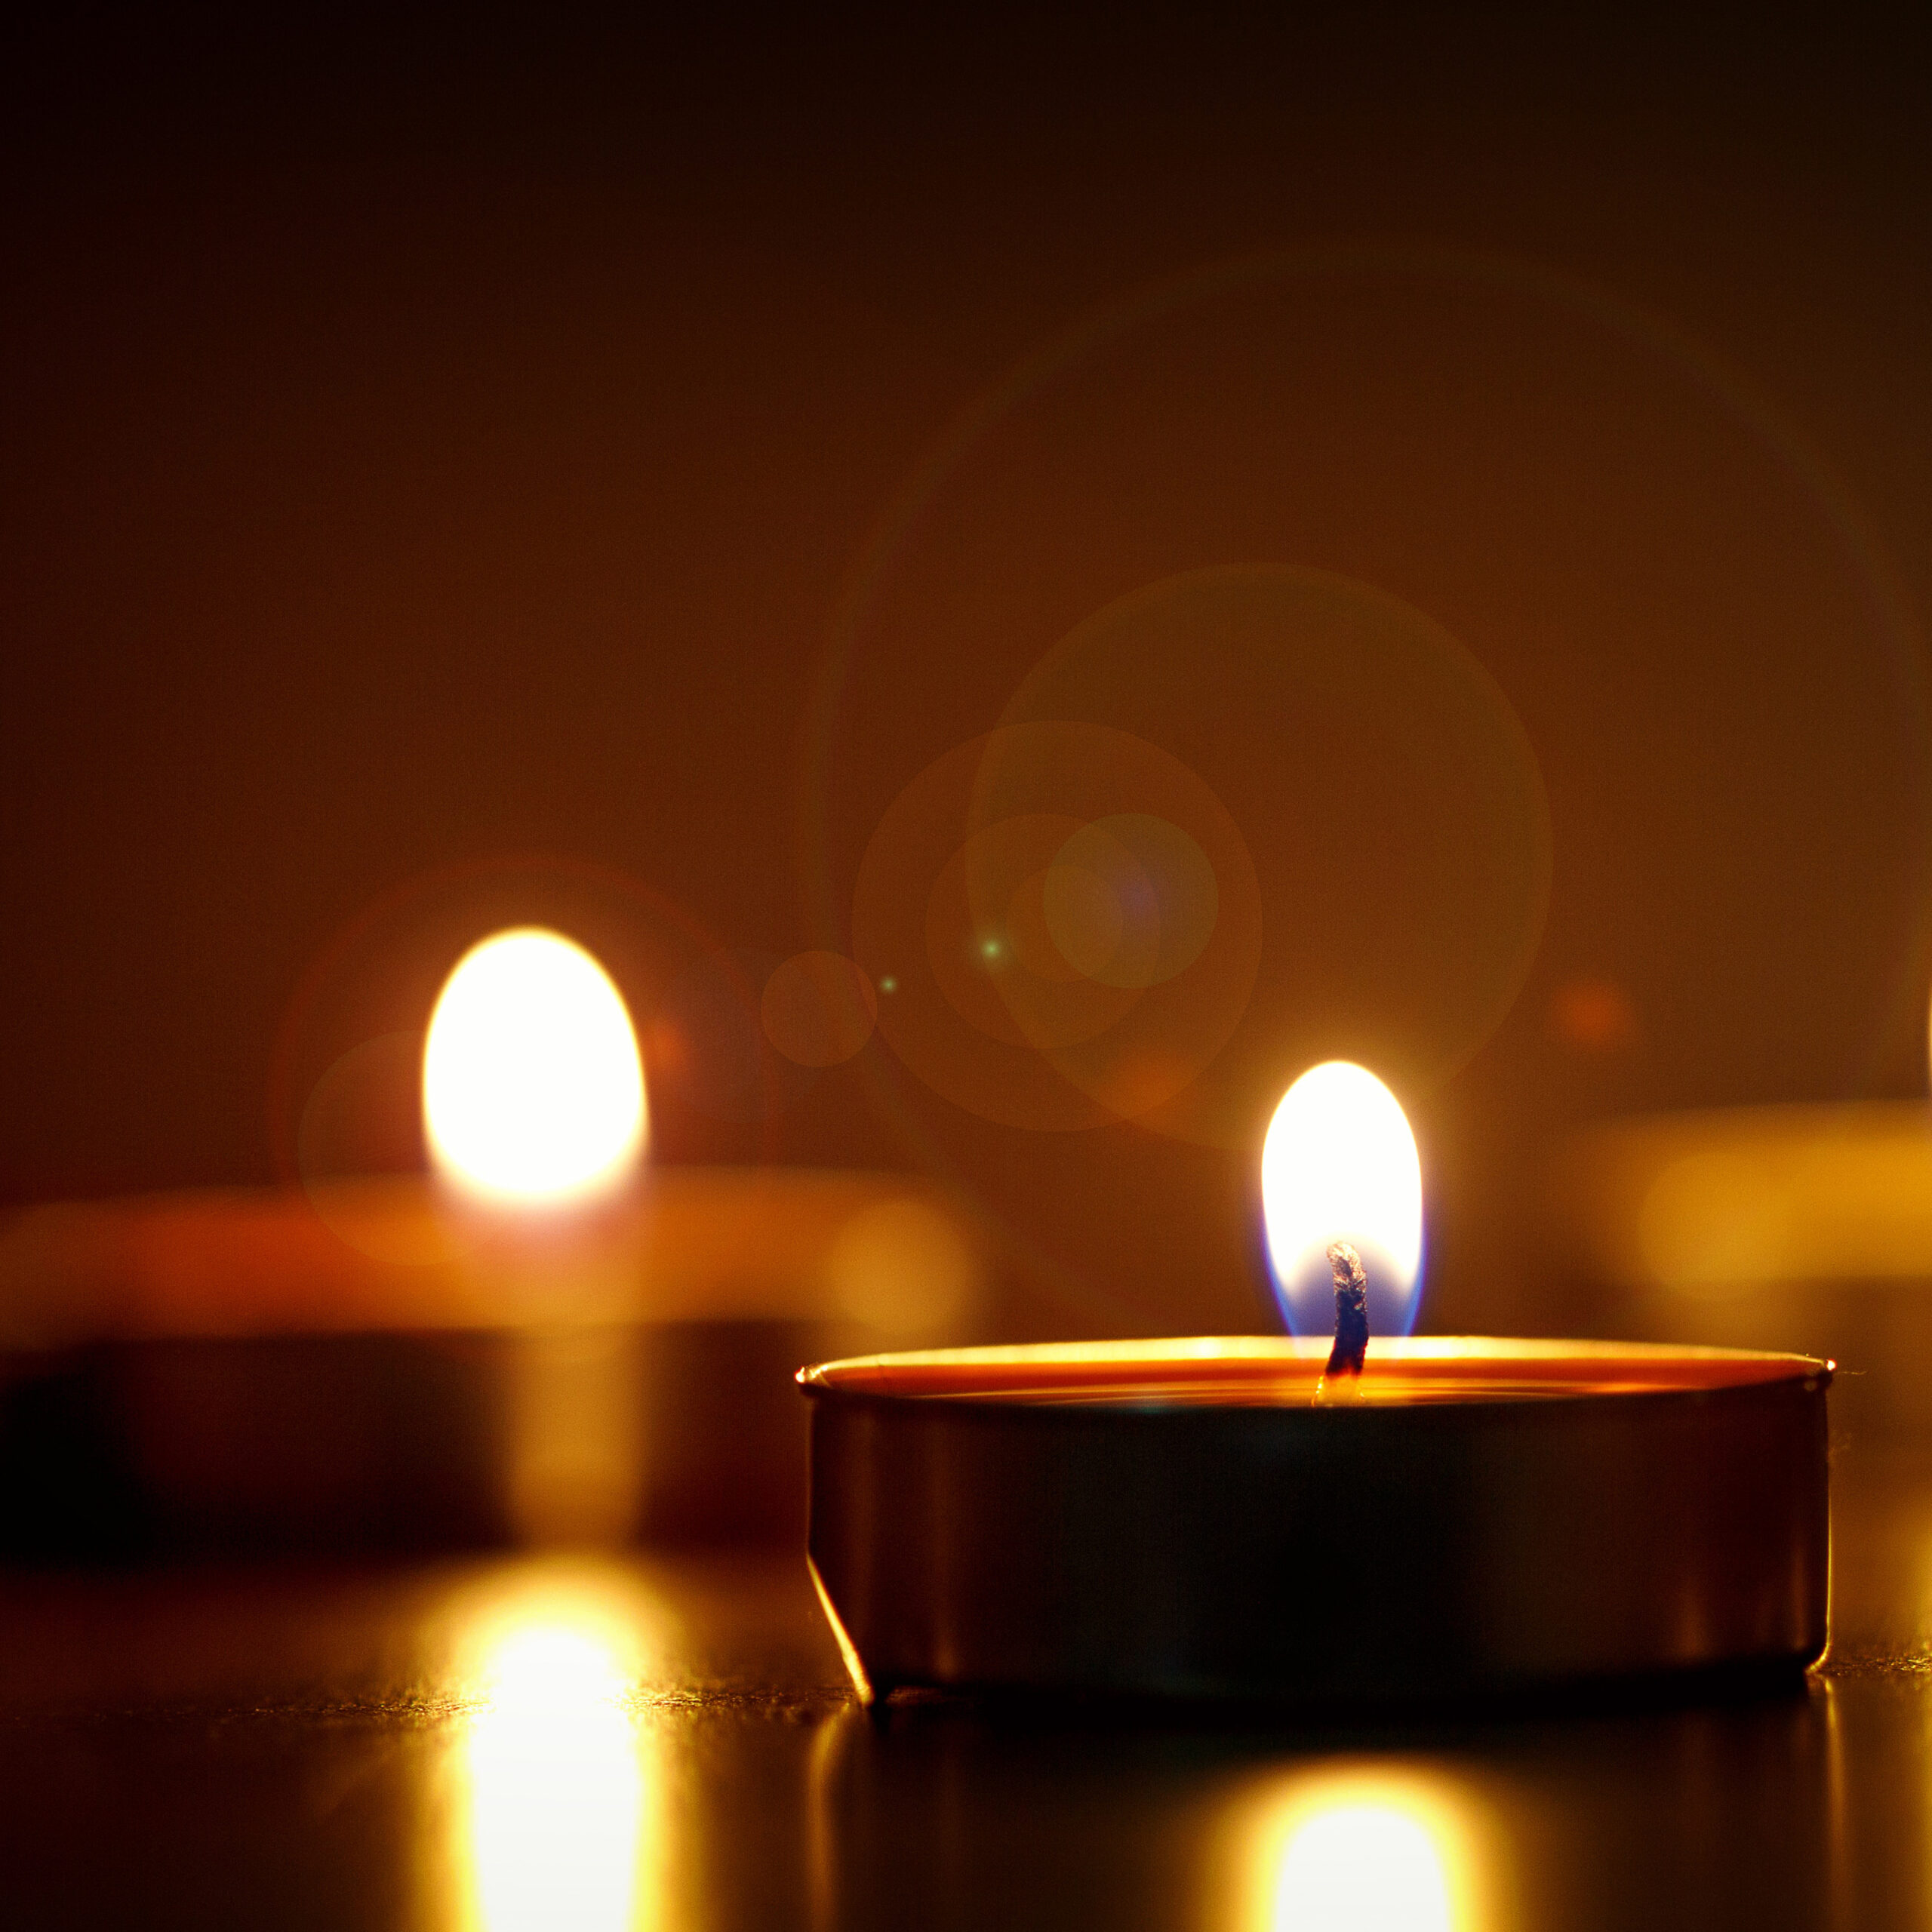 candlelight-square-1-scaled.jpg